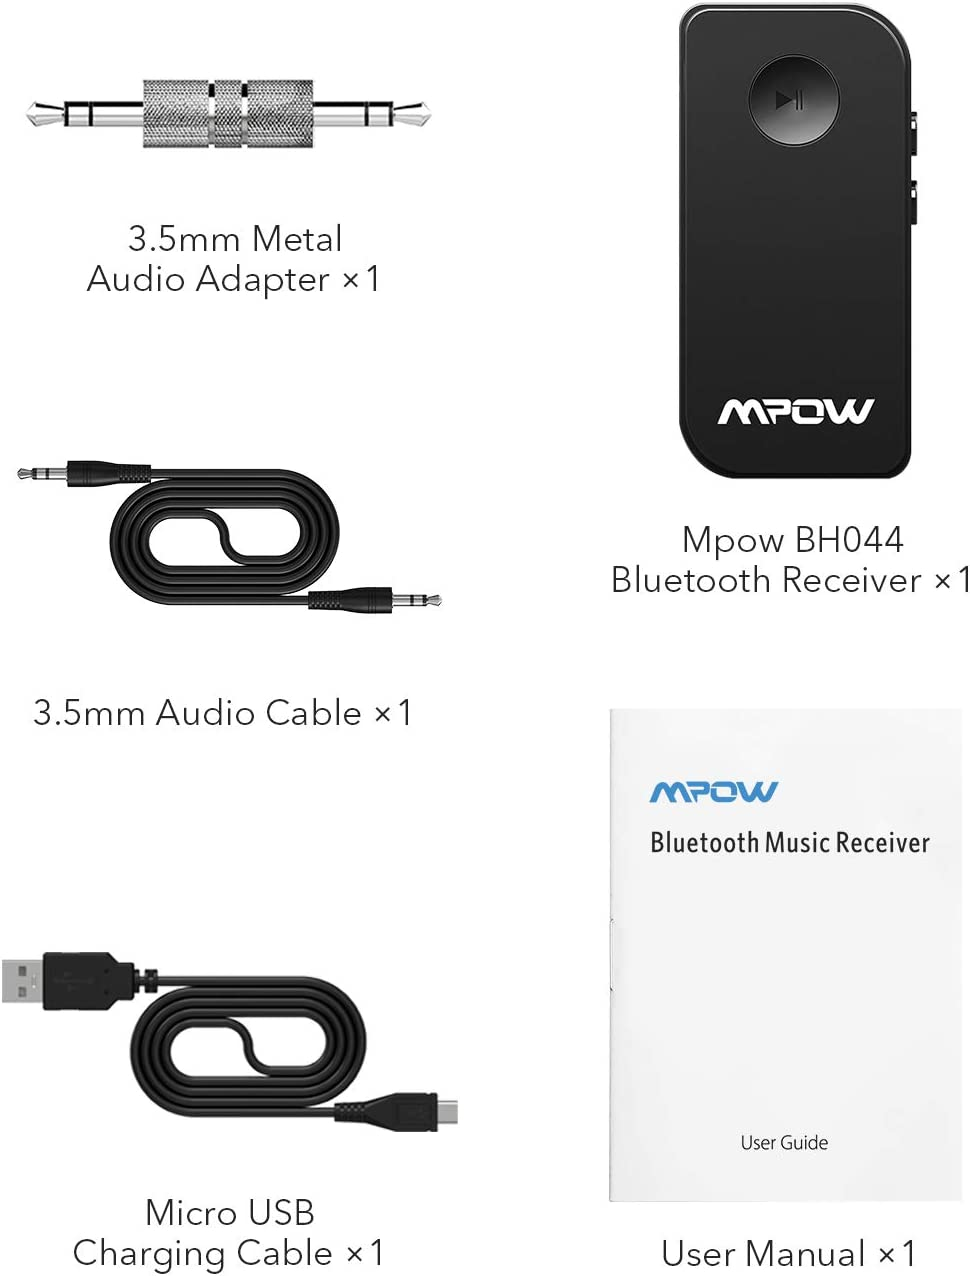 Streaming Maison//Kit Auto Voiture HiFi Mpow R/écepteur Bluetooth 5.0 Adaptateur Audio sans Fil Kit Mains Libres Voiture Deux Connexions avec Micro Int/égr/é et Sortie St/ér/éo 3,5mm pour Haut-parleurs